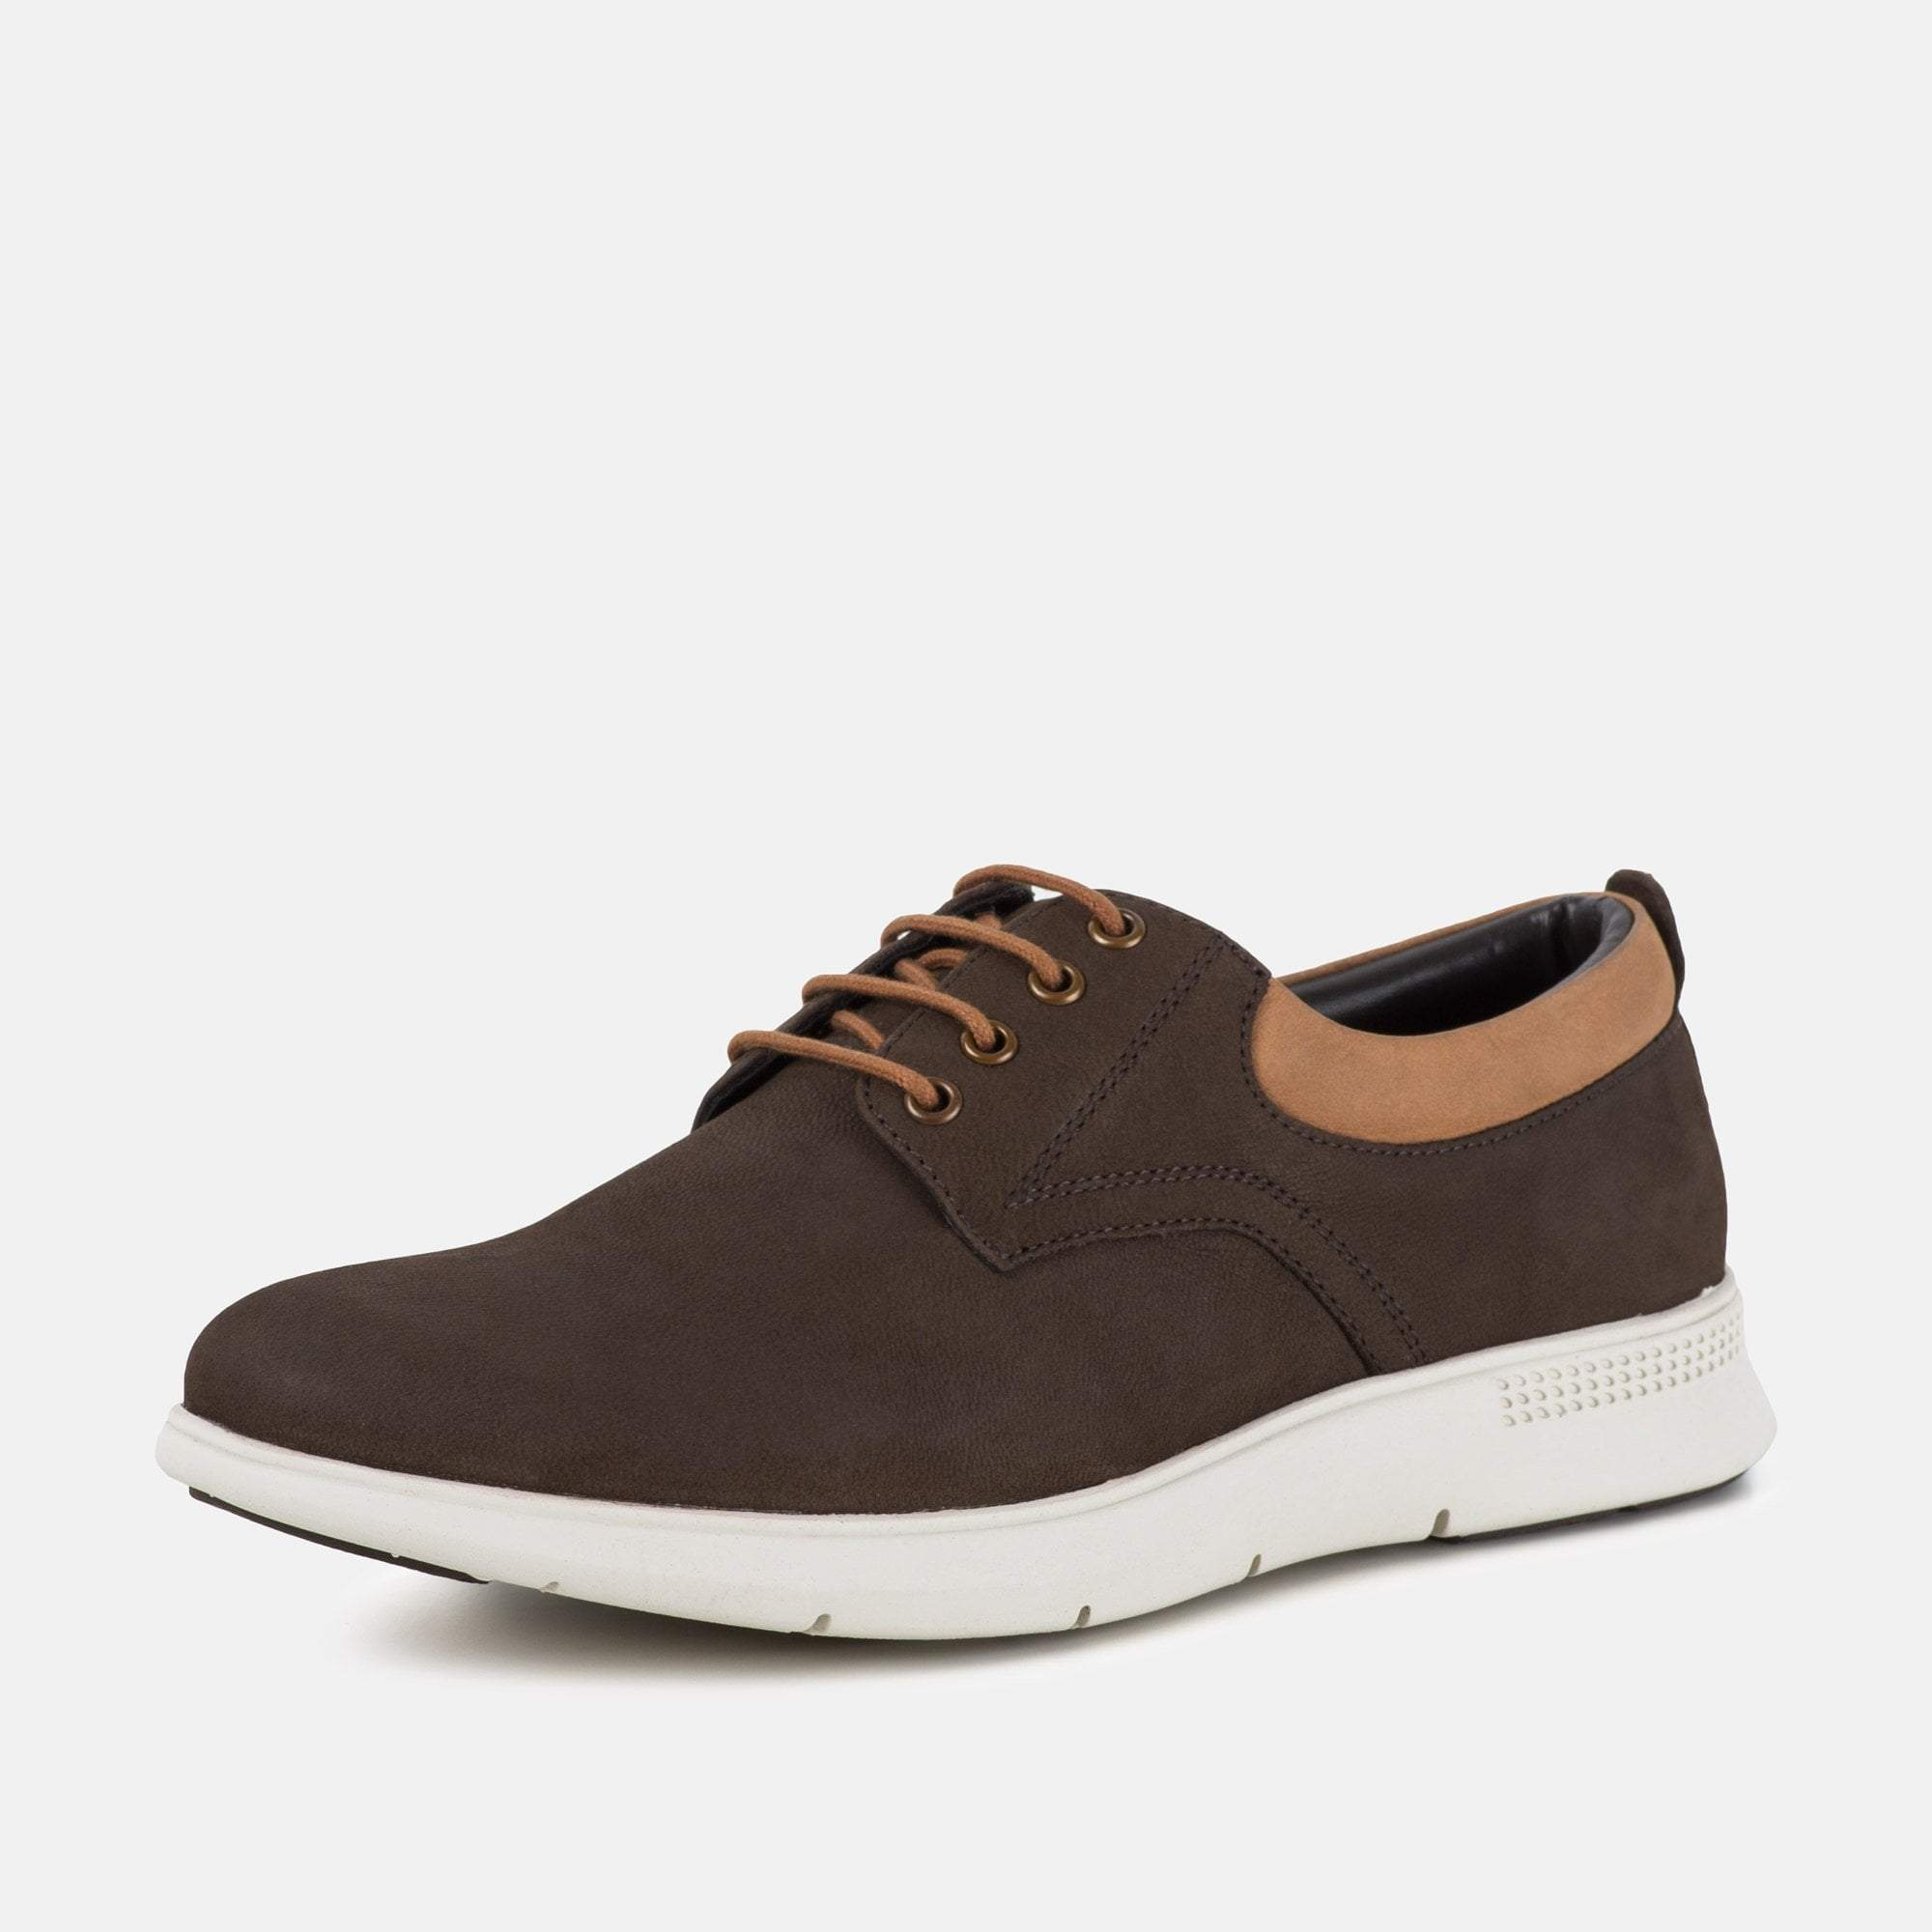 Redfoot Footwear UK 6 / EURO 39 / US 7 / Navy / Nubuck MORRISON BROWN